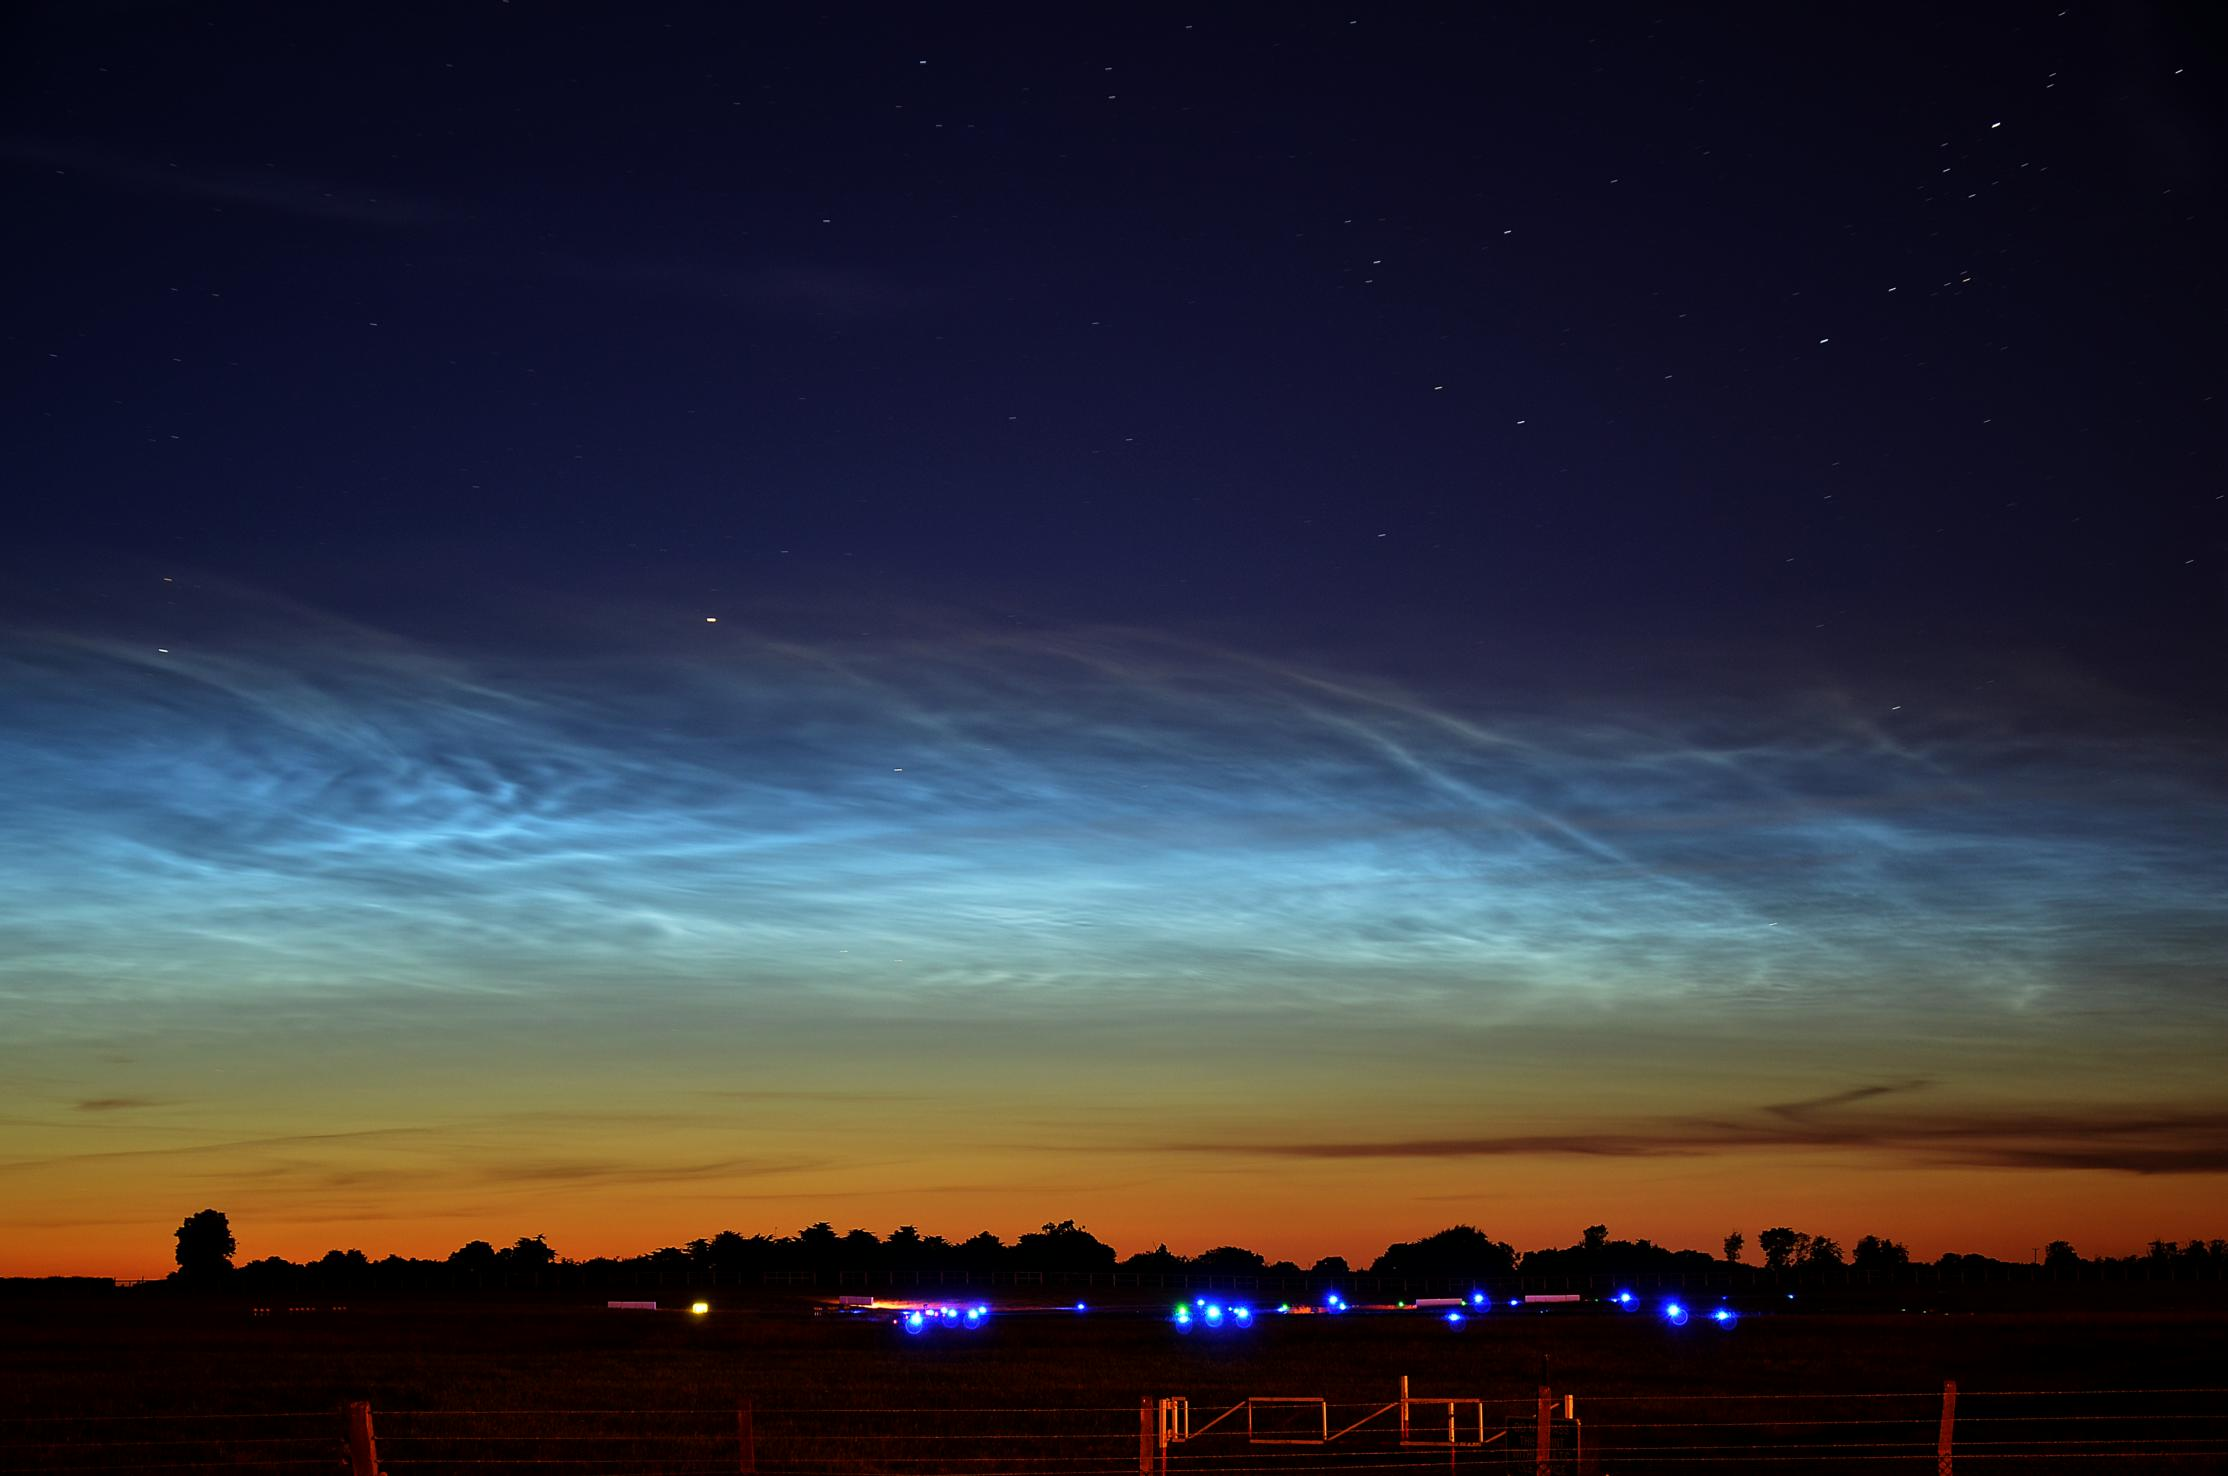 noctilucent-clouds-1-june-19th-20th-2014.jpg